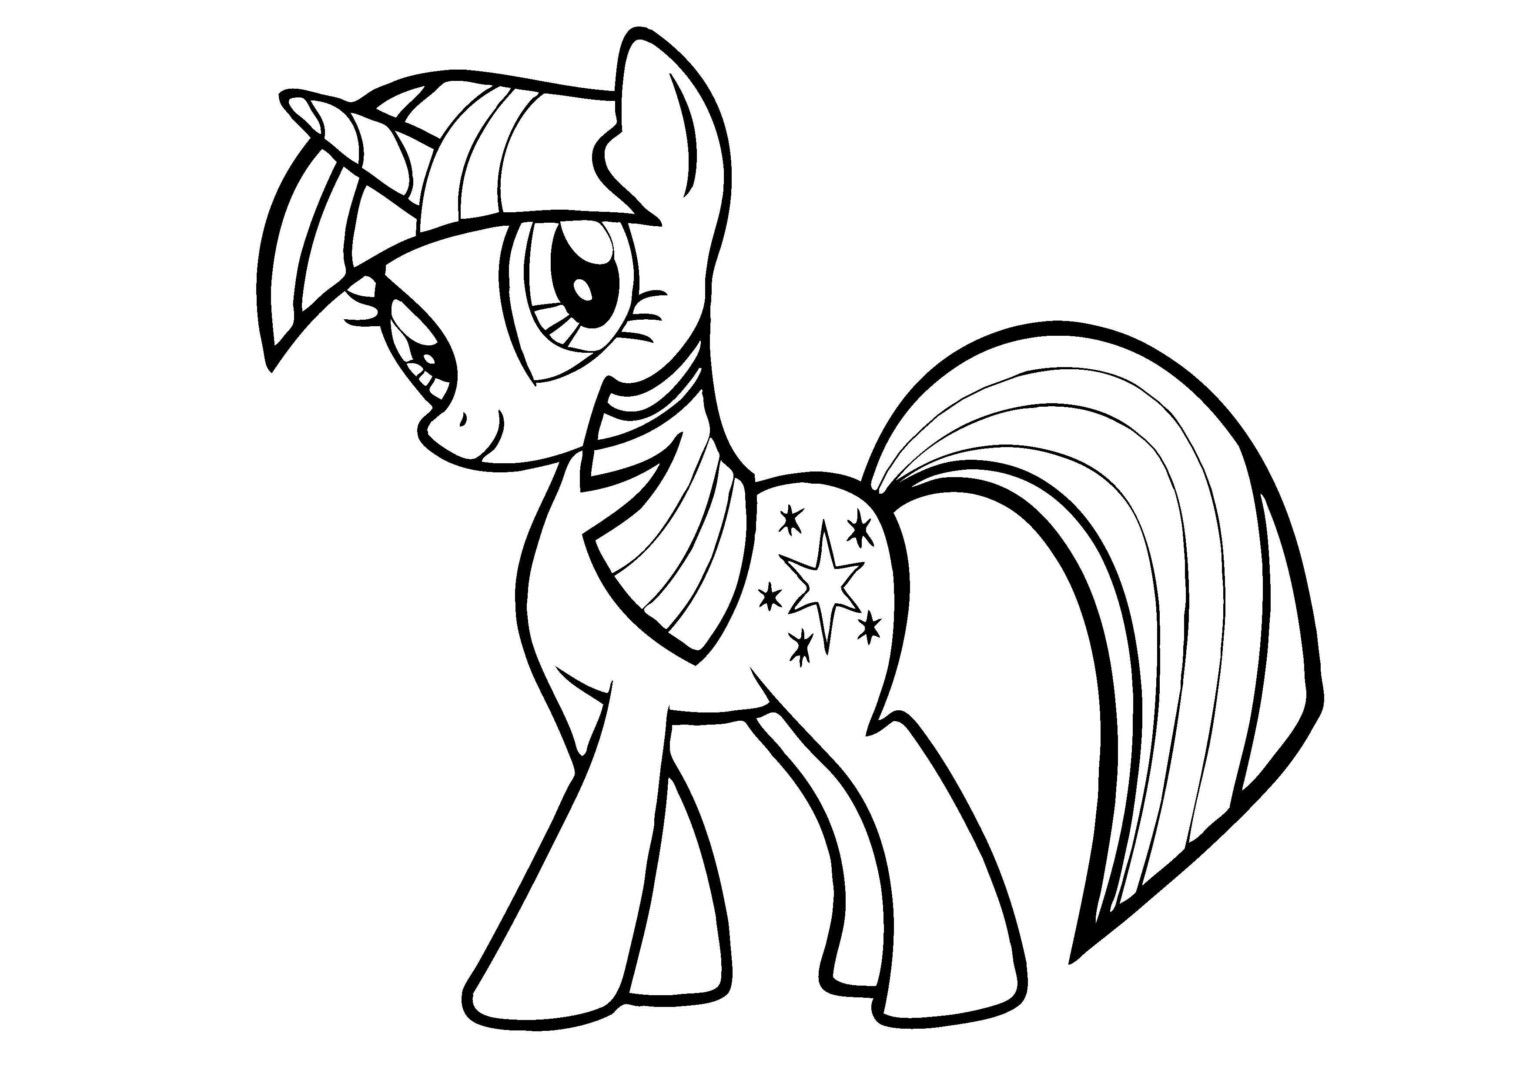 my little pony coloring pages pdf Pin by julia on Colorings | My little pony coloring, Little pony, Pony my little pony coloring pages pdf